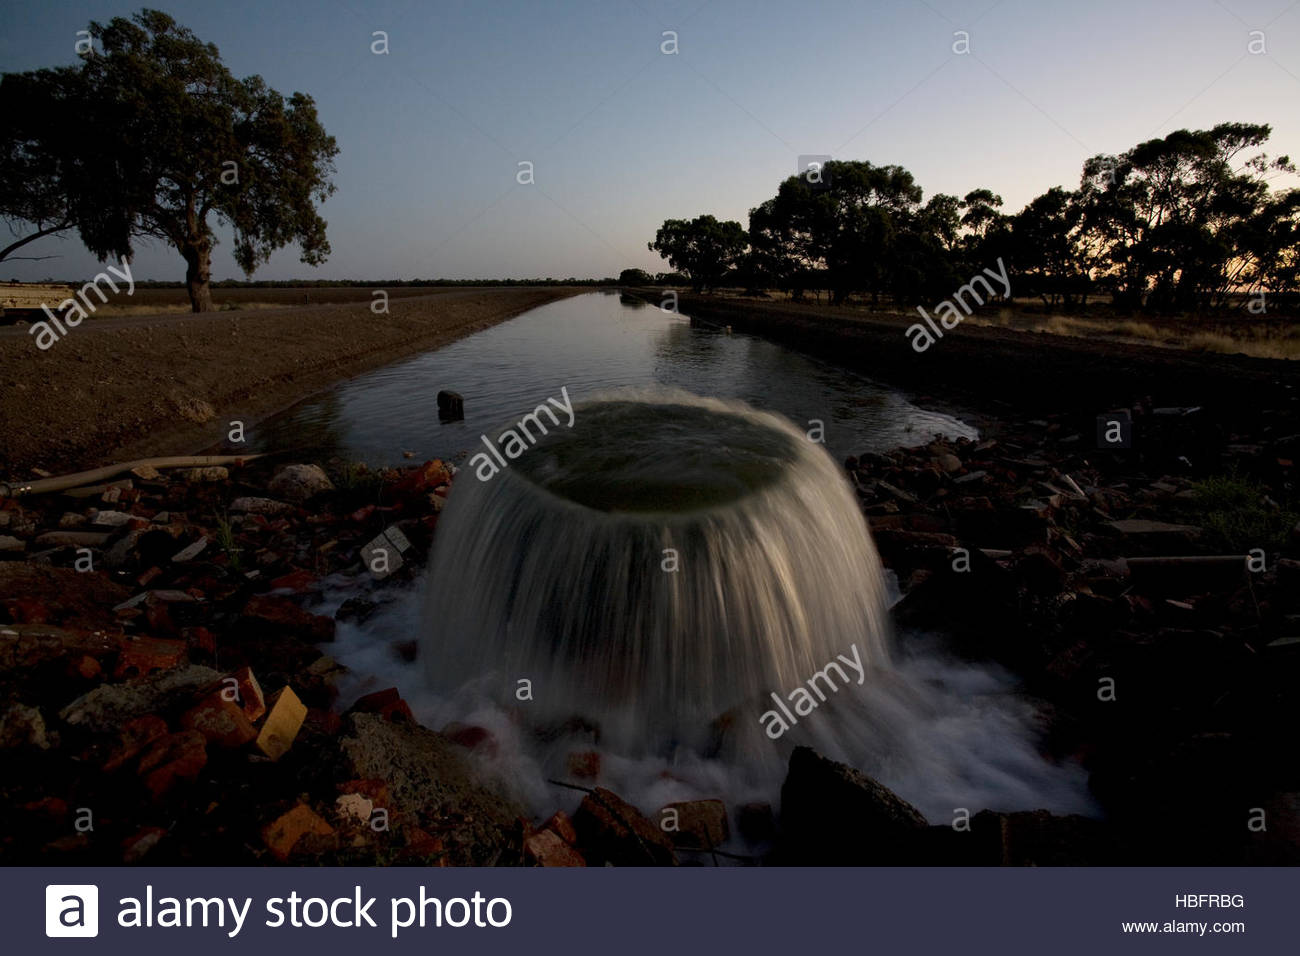 Irrigation water from the Murrumbidgee River fills a canal. - Stock Image